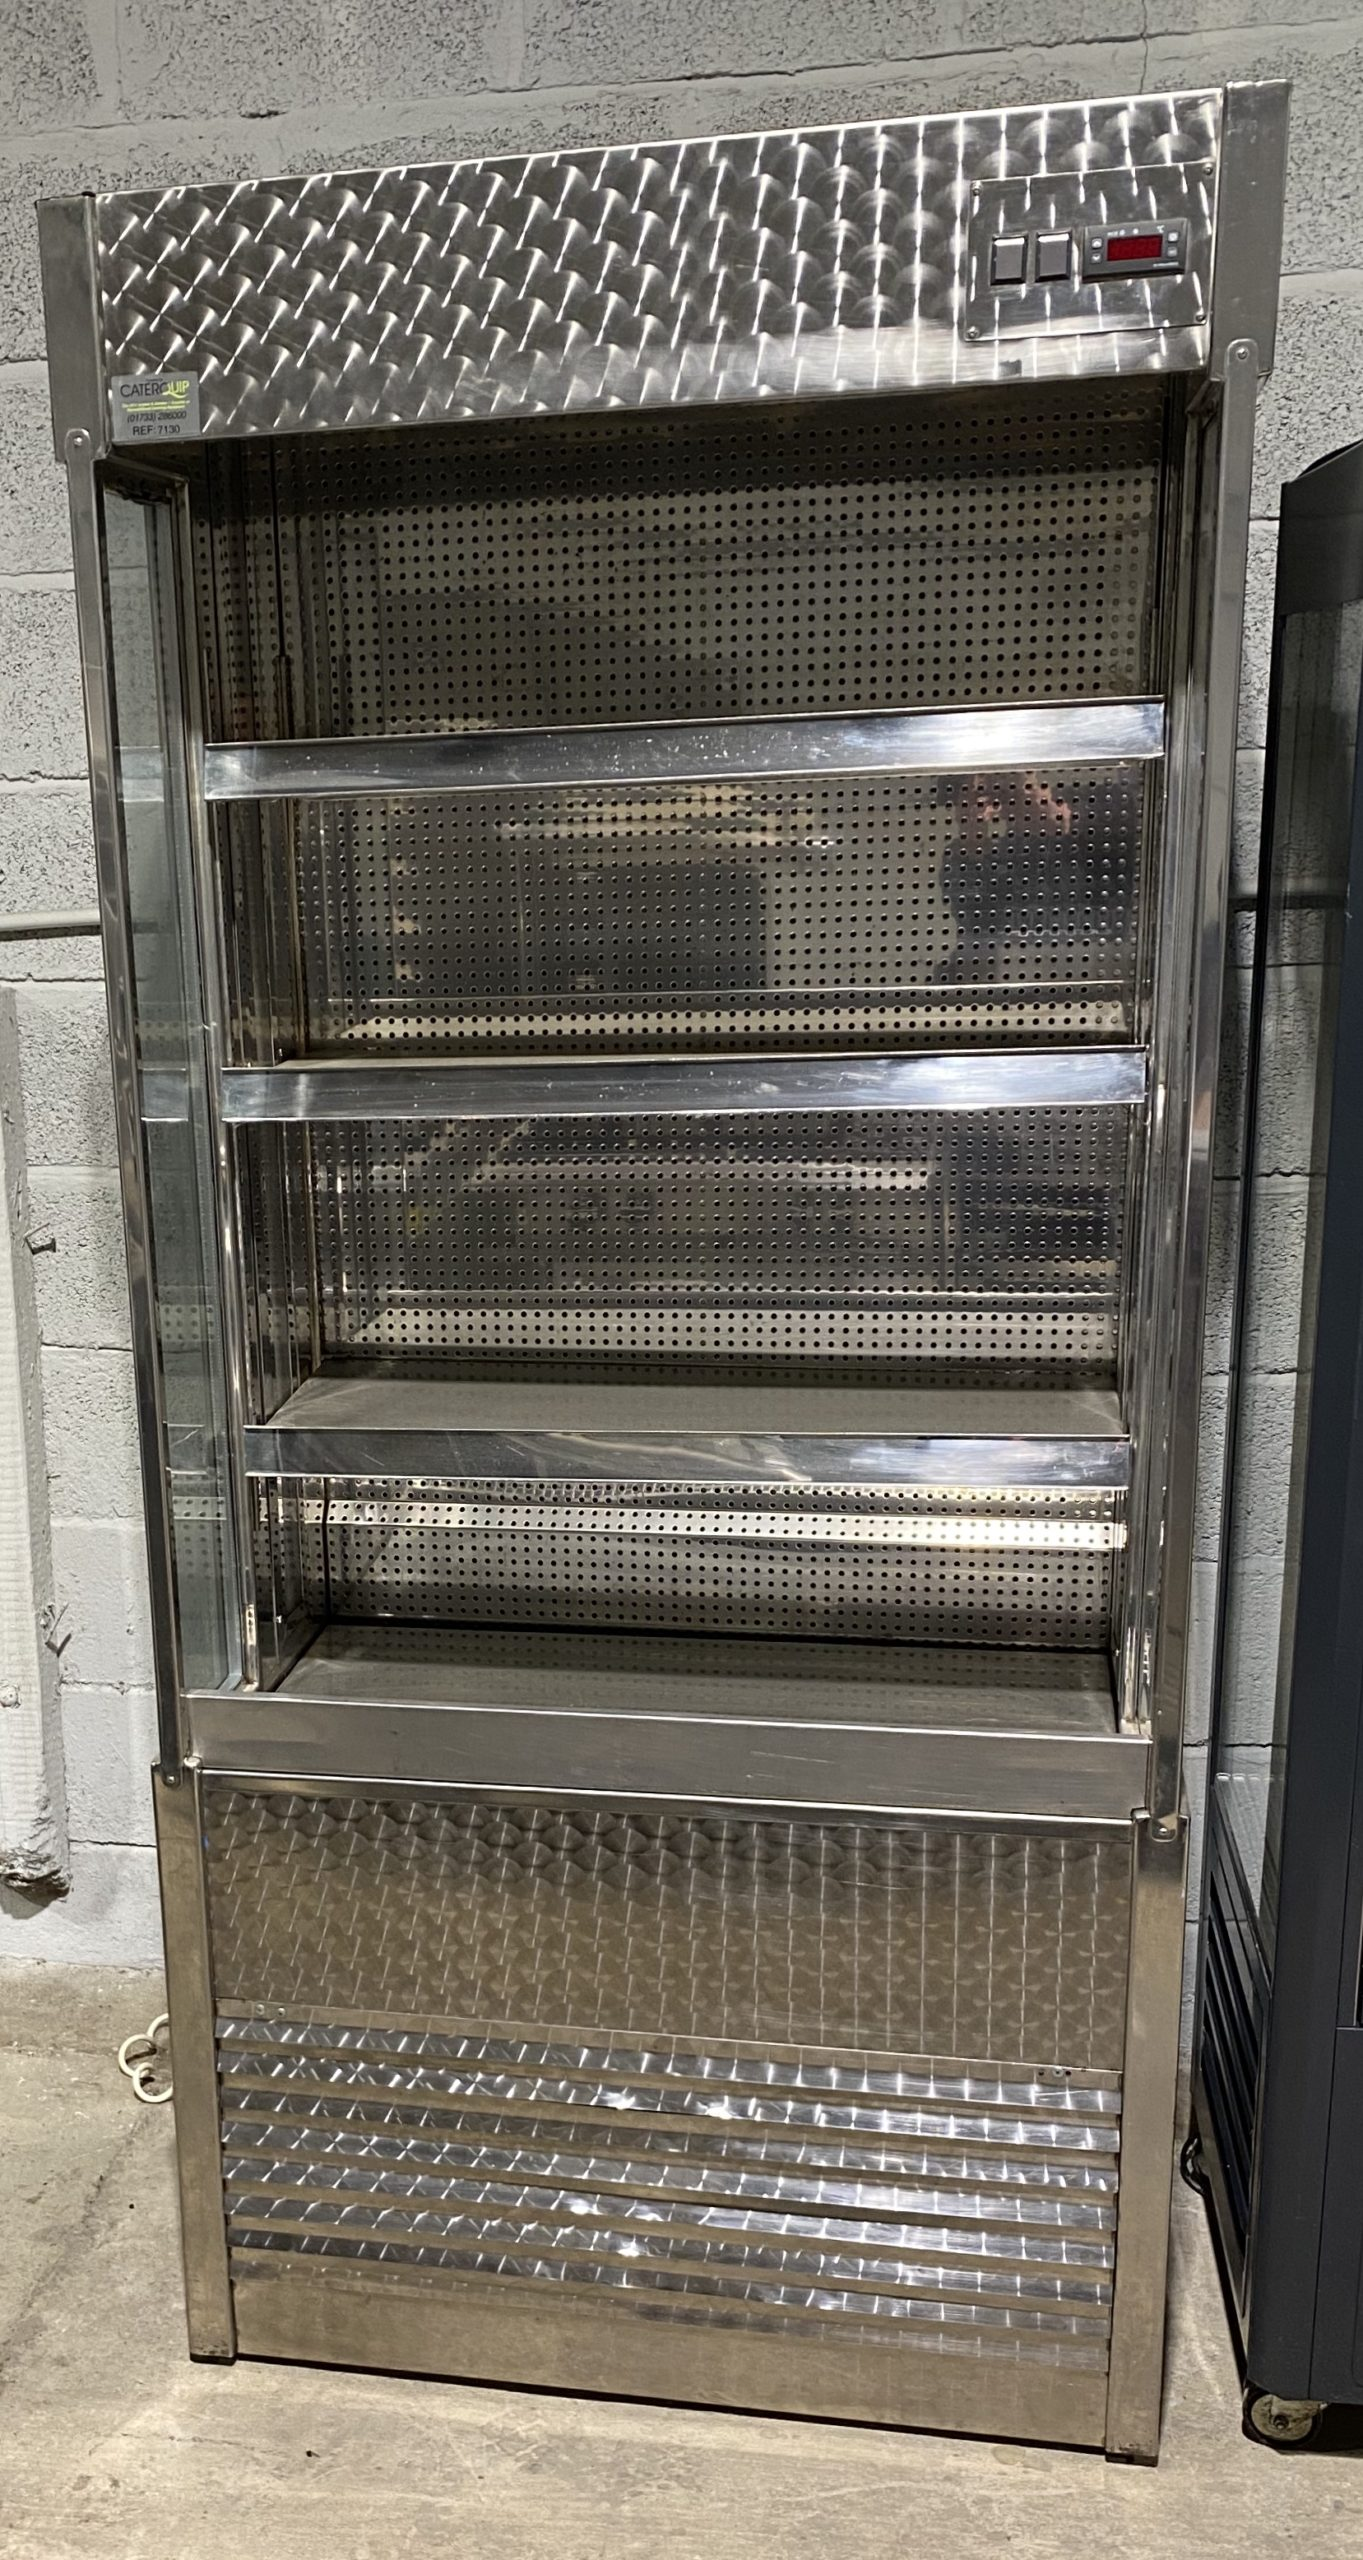 IARP Chilled Multideck Reach-In Display